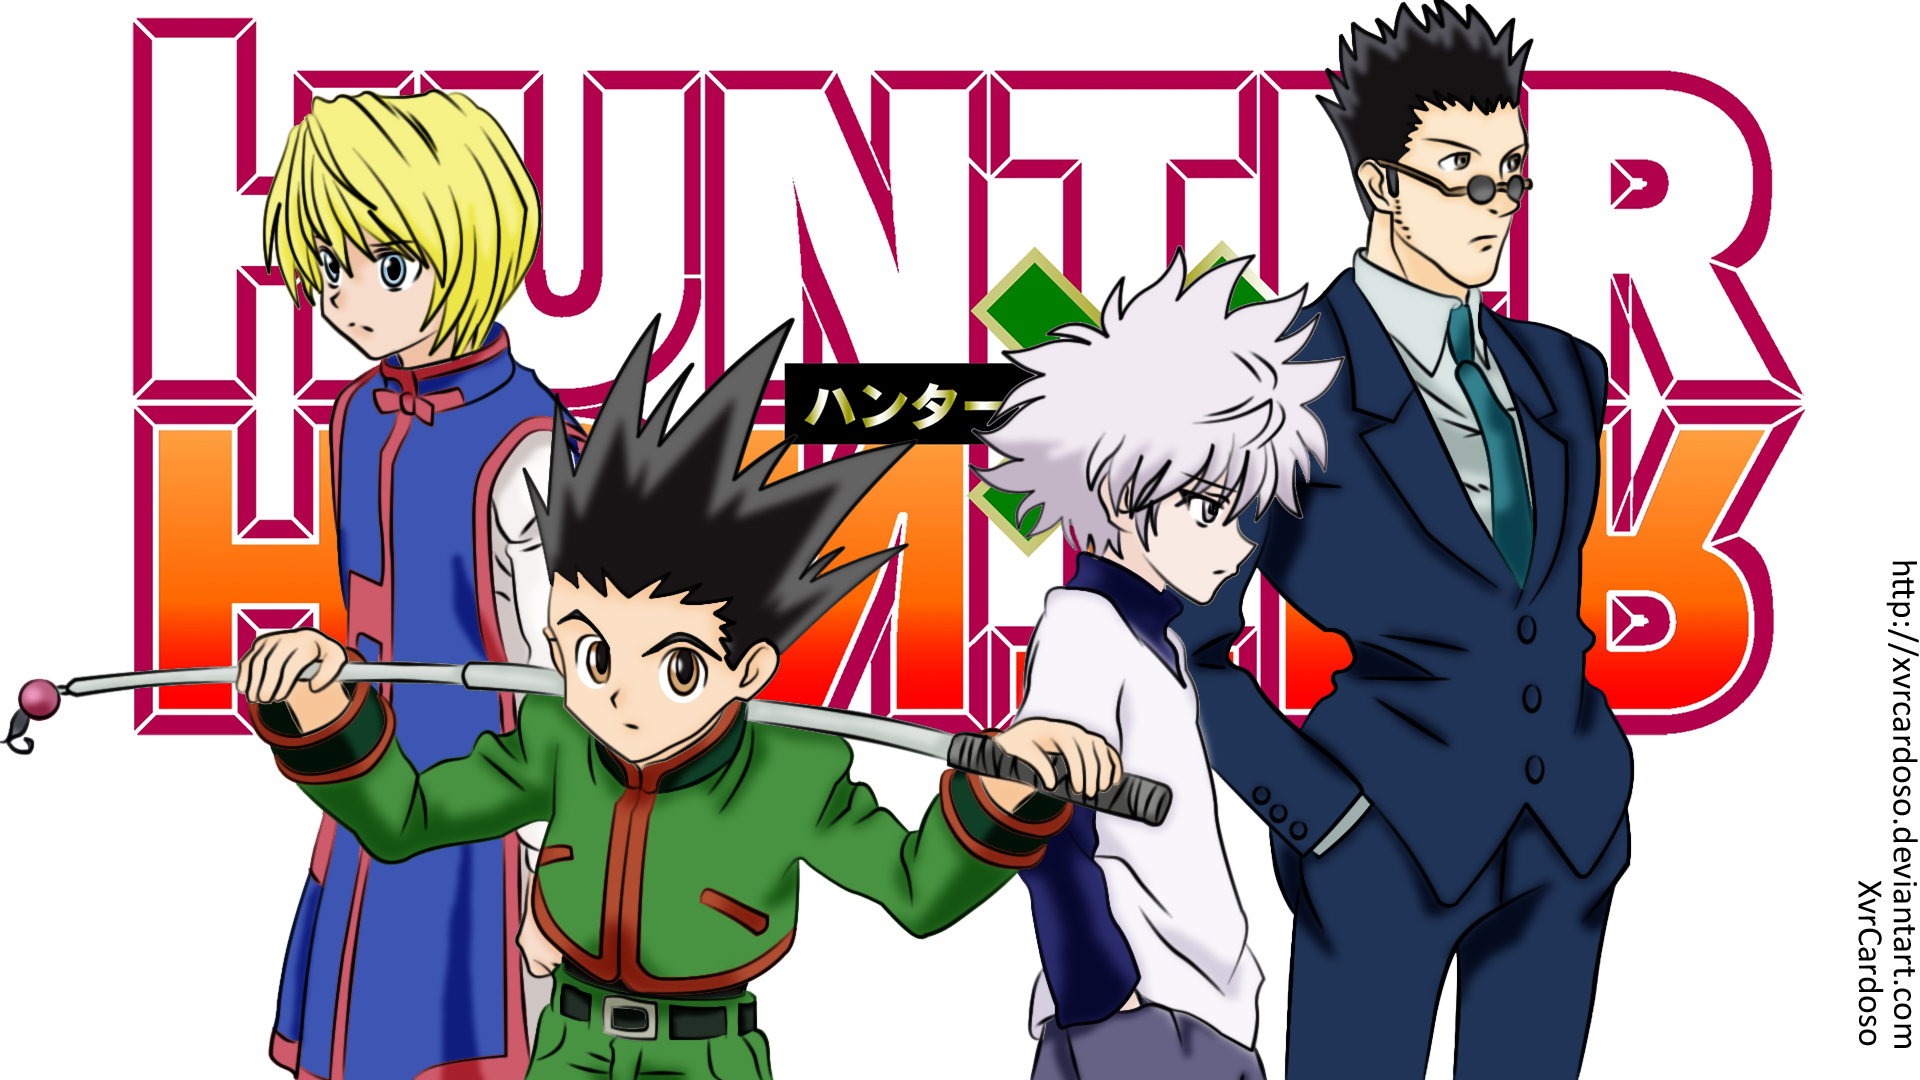 All Characters Hunter X Hunter Anime Image Gallery Wallpaper HD 1920x1080